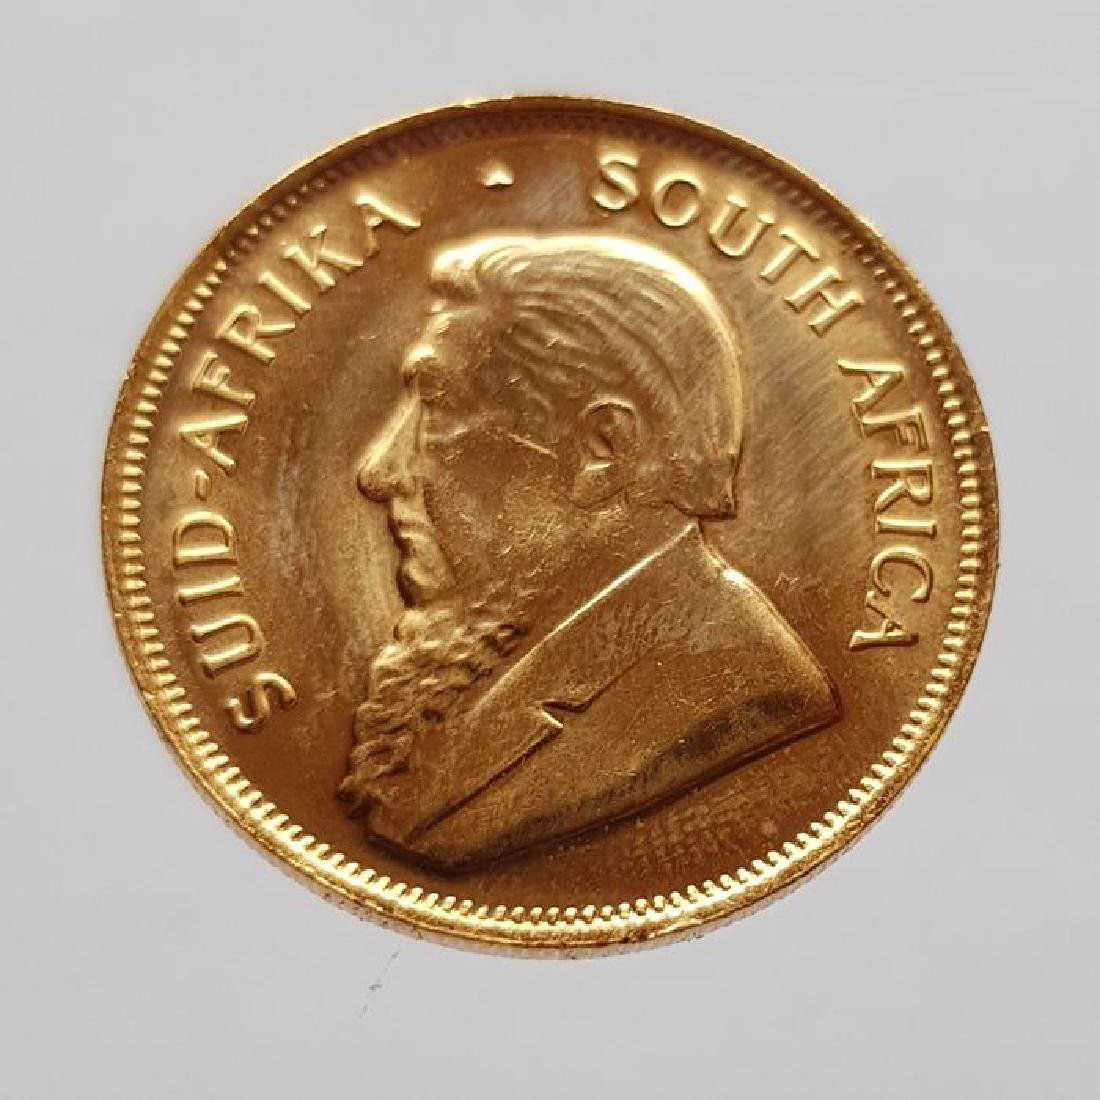 South Africa - 1/2 Krugerrand 1981 - 1/2 oz of gold